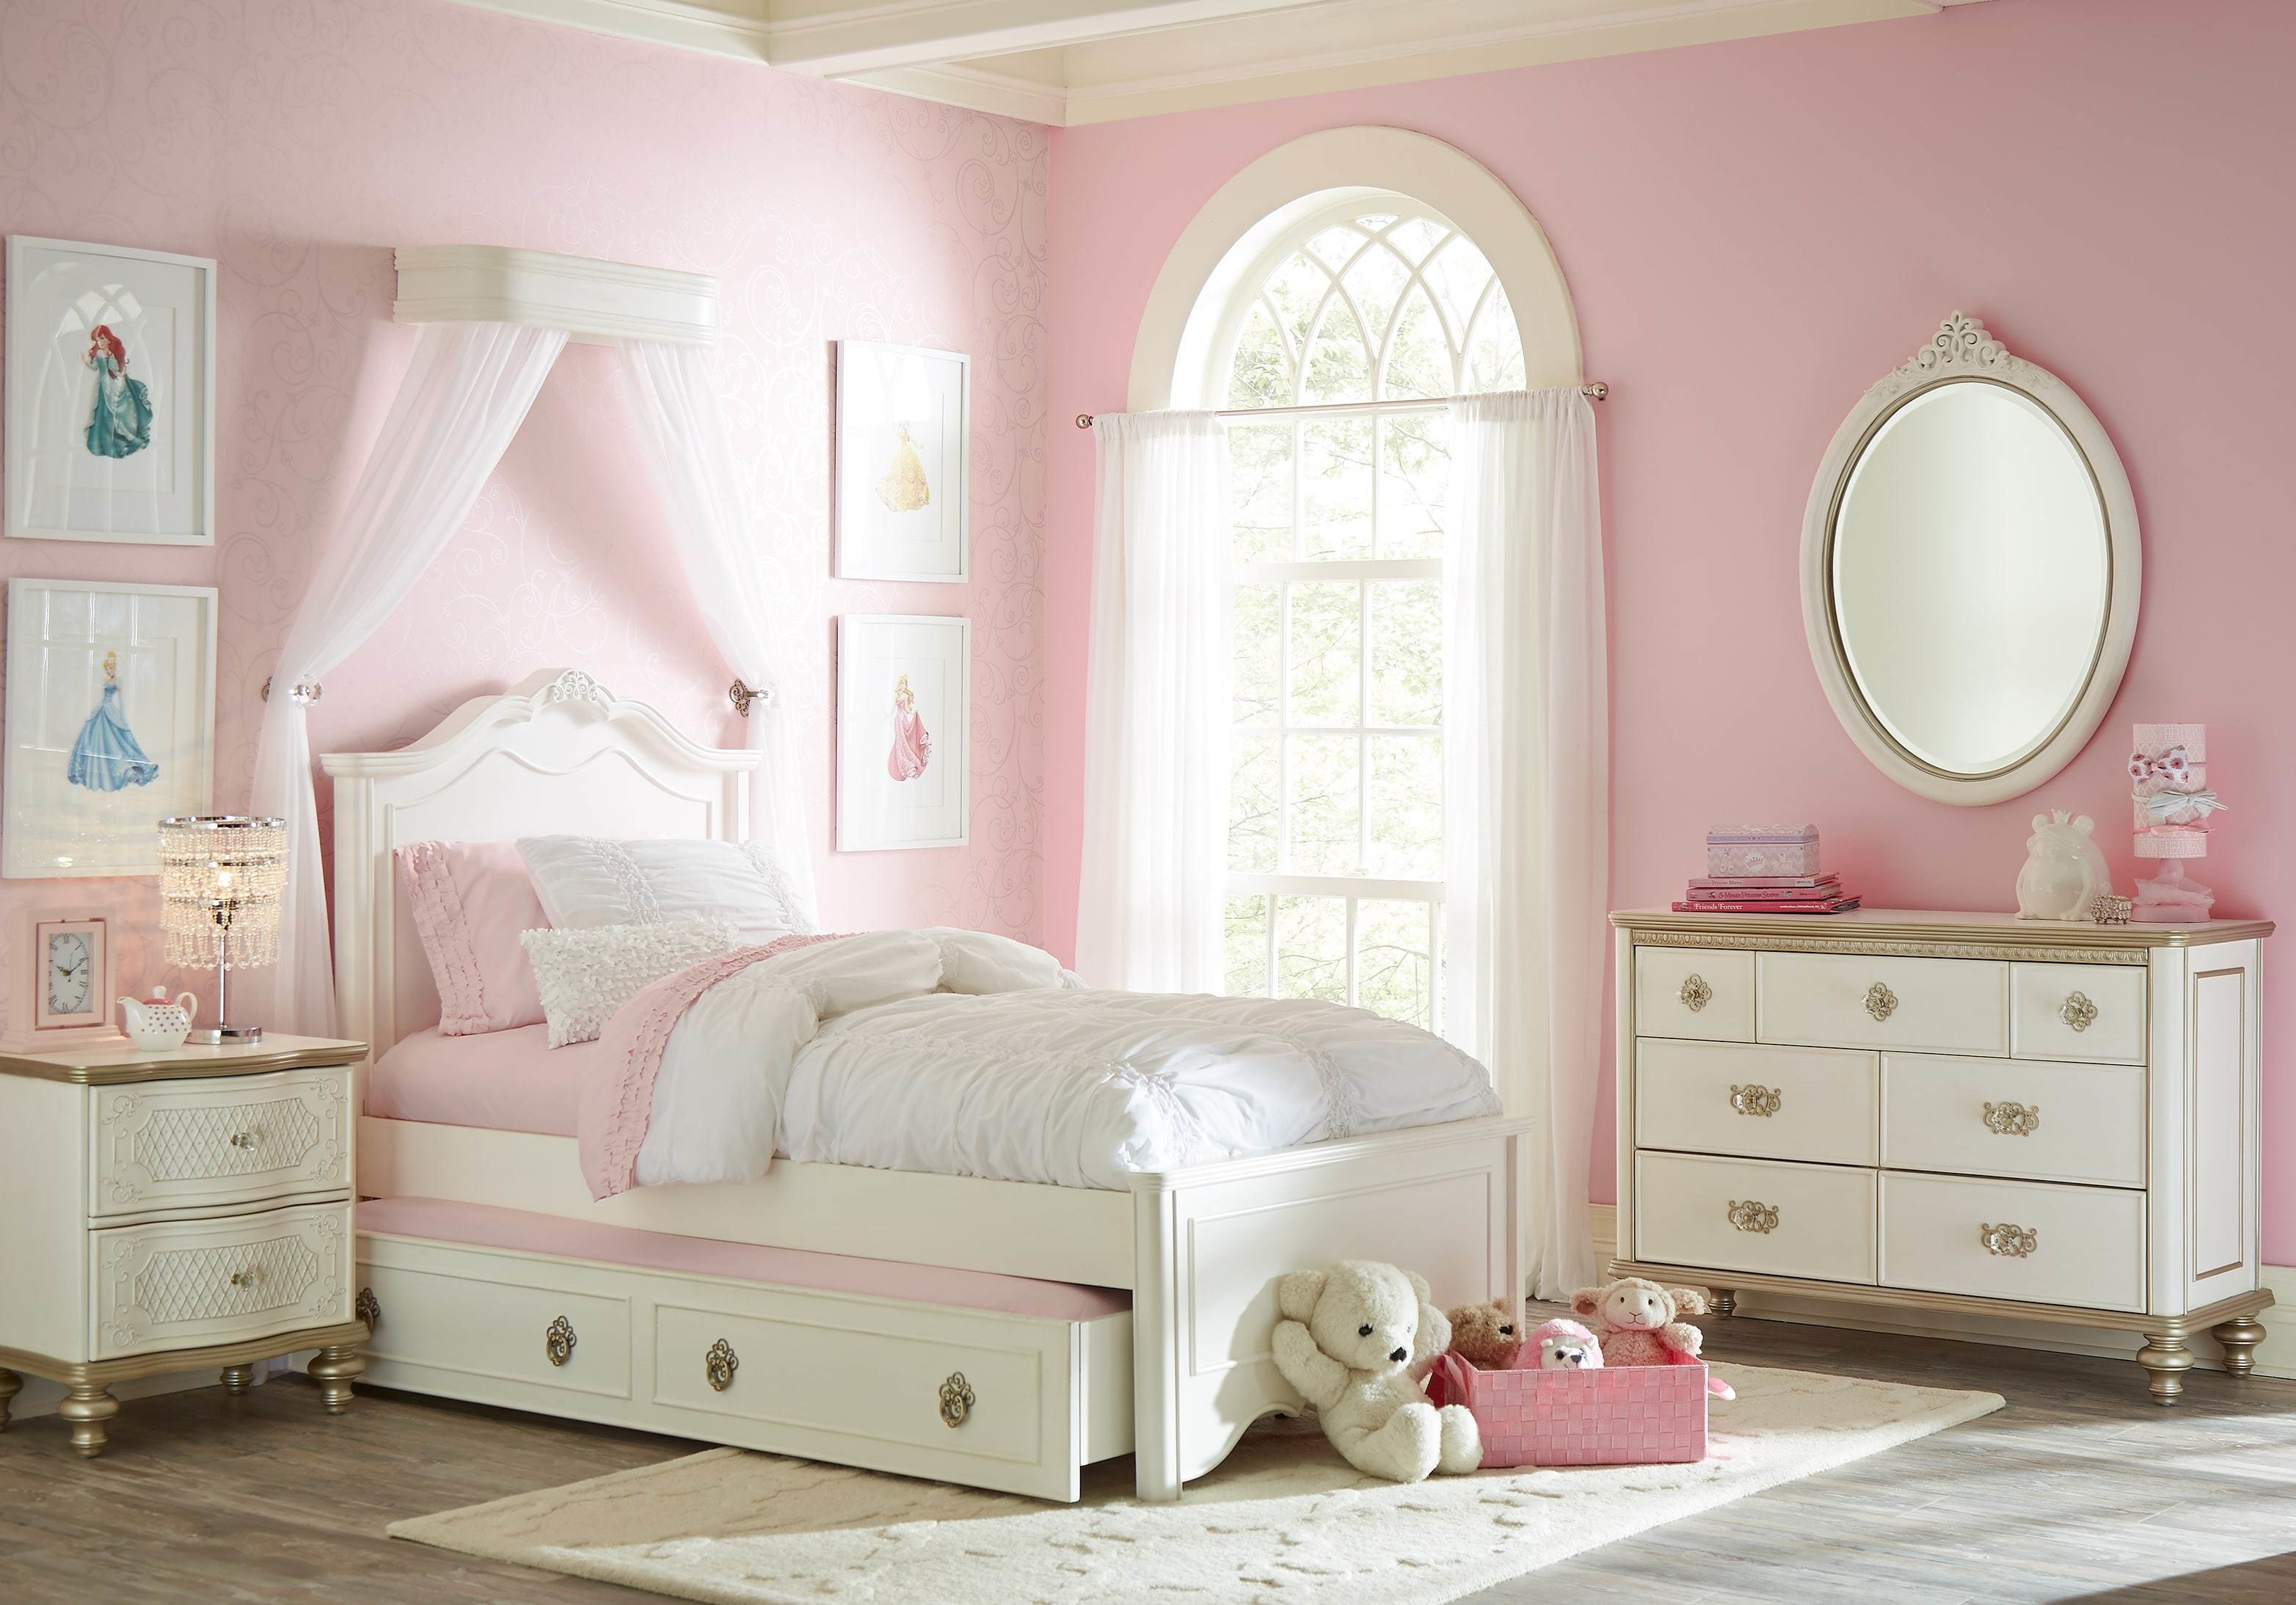 Best Disney Princess Enchanted Kingdom White 5 Pc Twin Panel Bedroom T**N Bedroom Sets Colors With Pictures